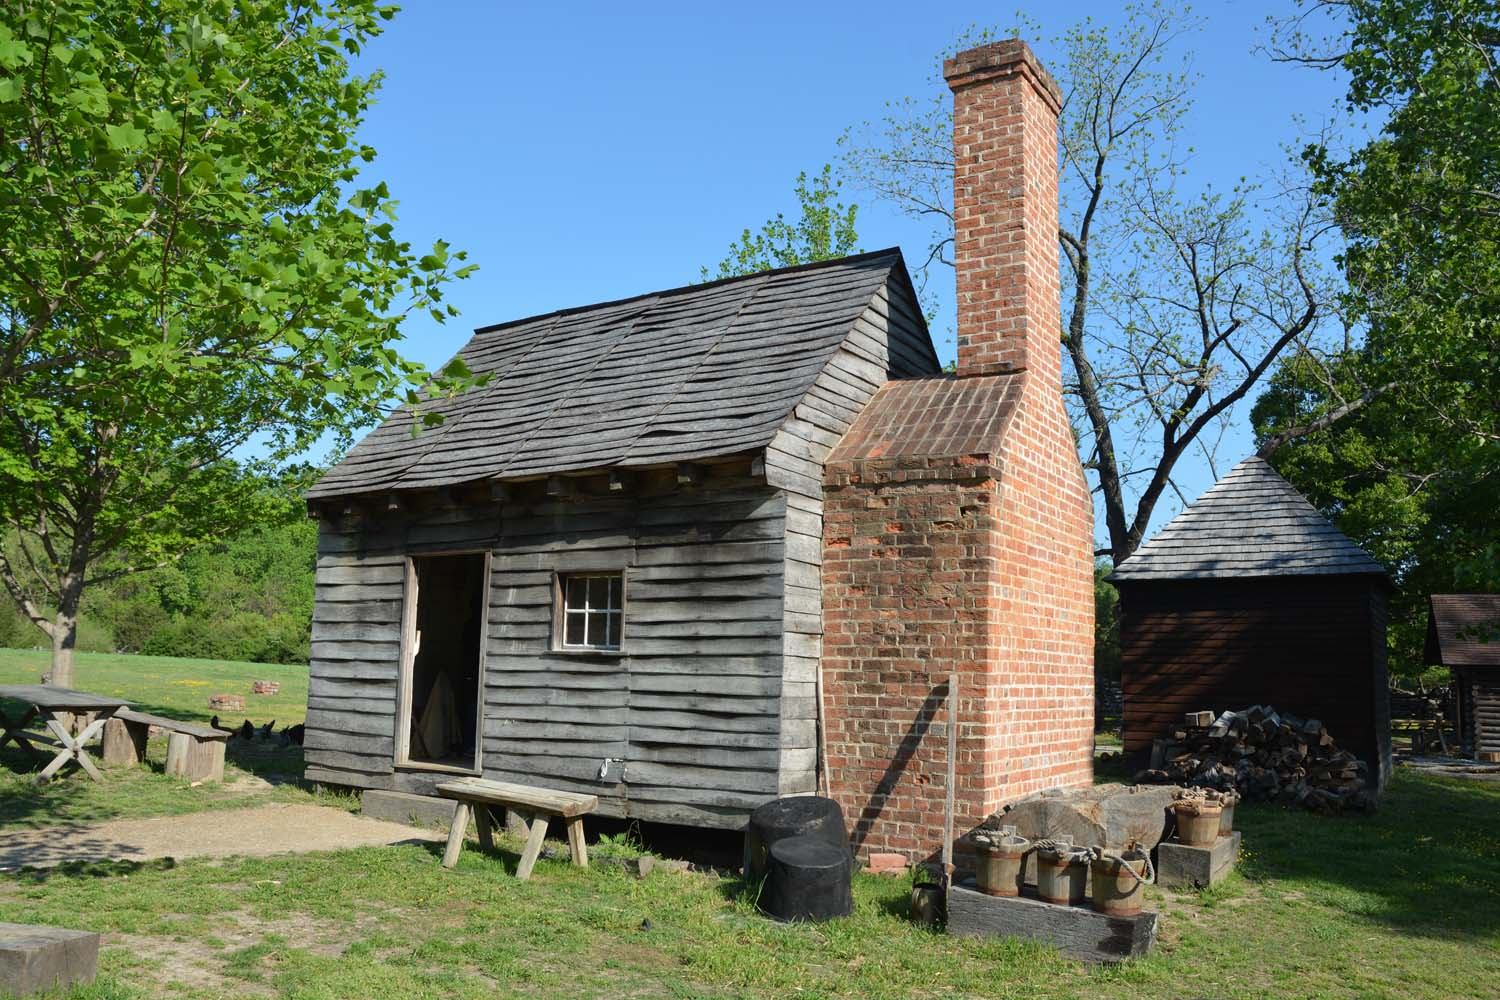 Slave quarters up to 10 people would occupy a house this size